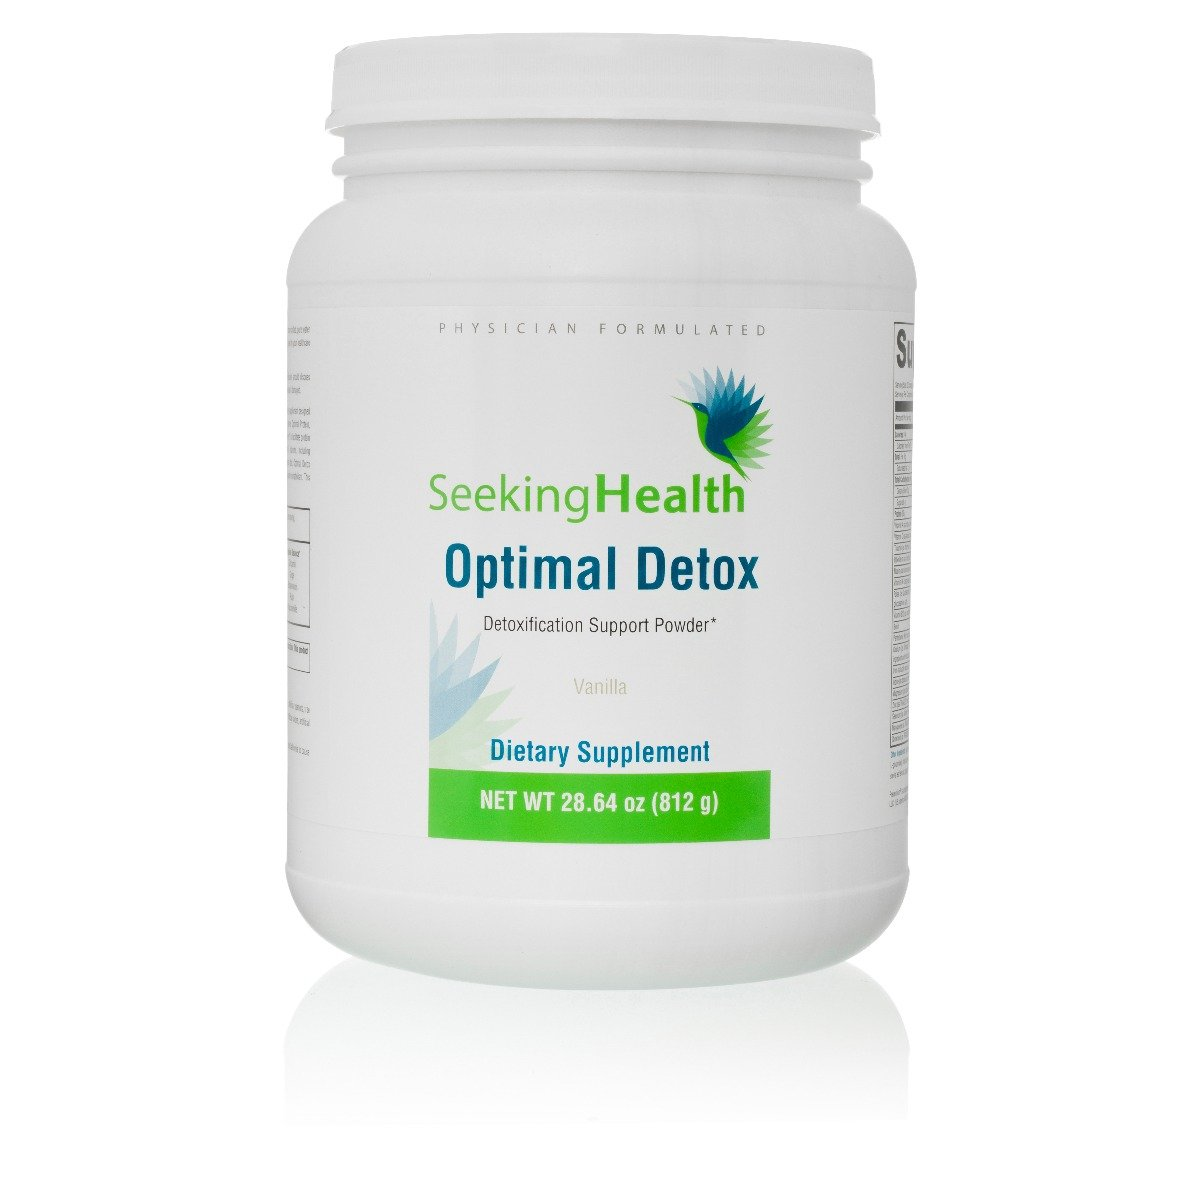 Optimal Detox Vanilla 812g